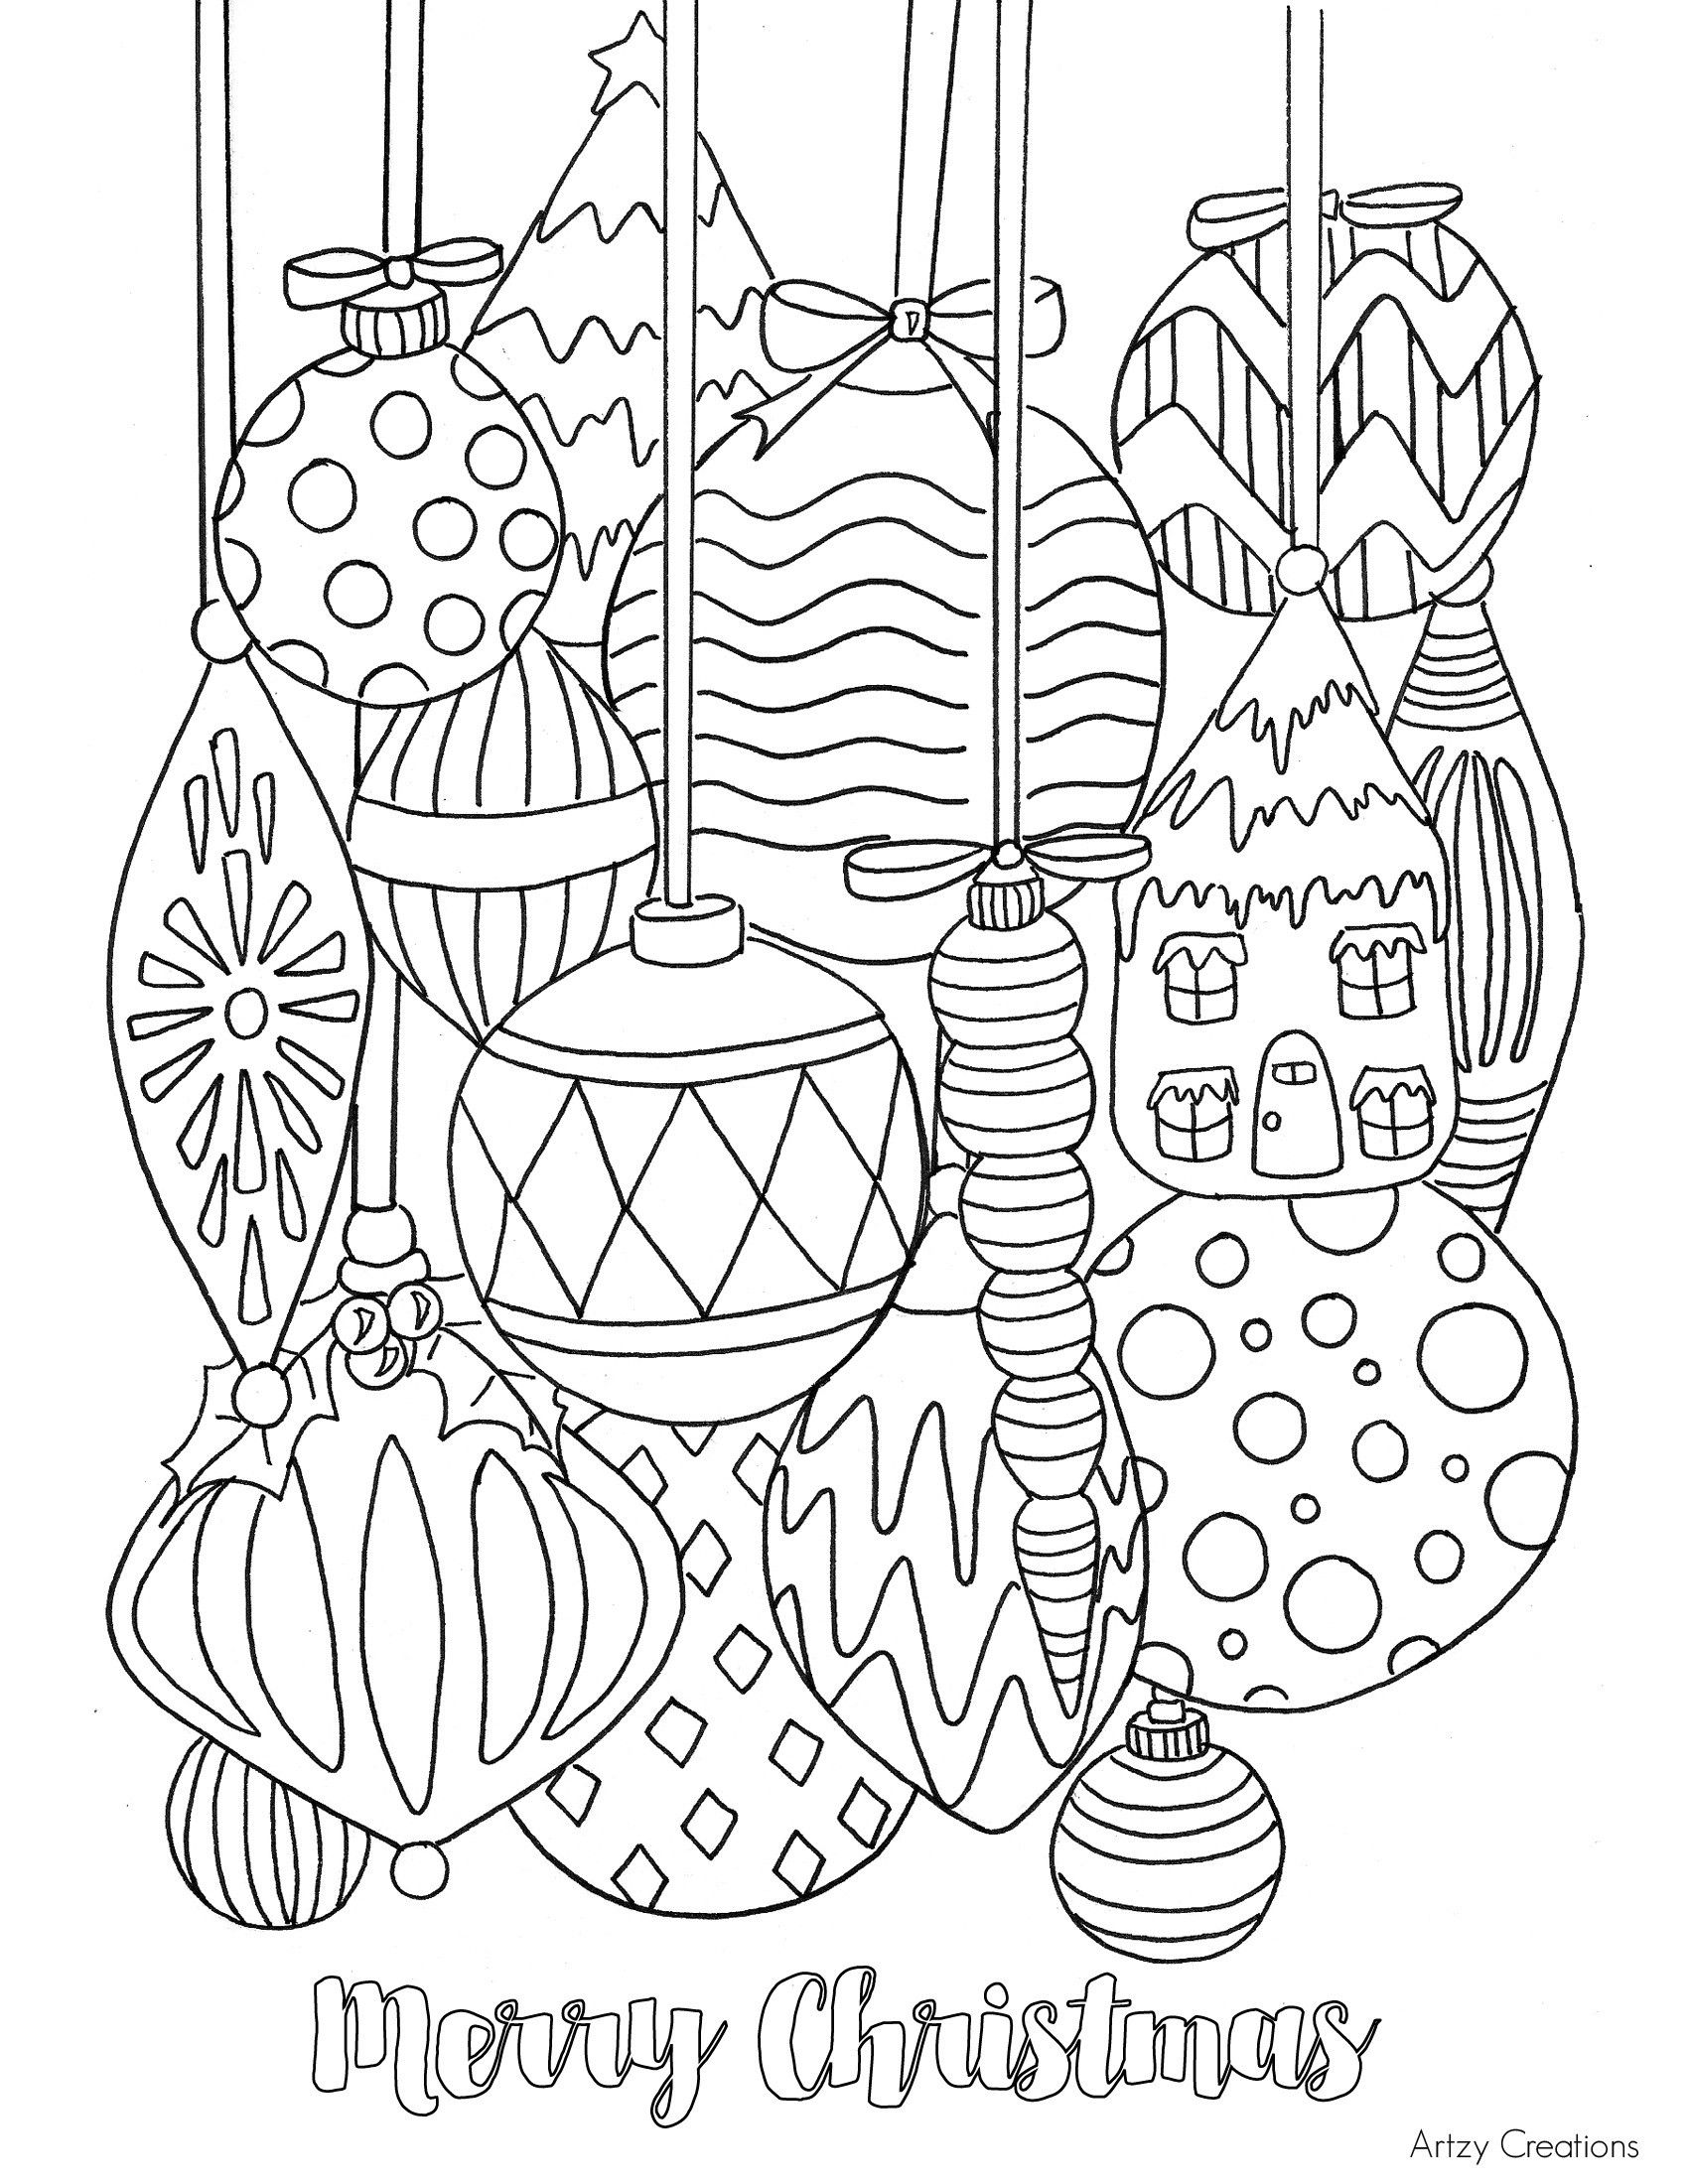 Printable Christmas Coloring Pages For Adults Christmas Coloring Page Printable Christmas Coloring Pages Christmas Coloring Pages Free Christmas Coloring Pages